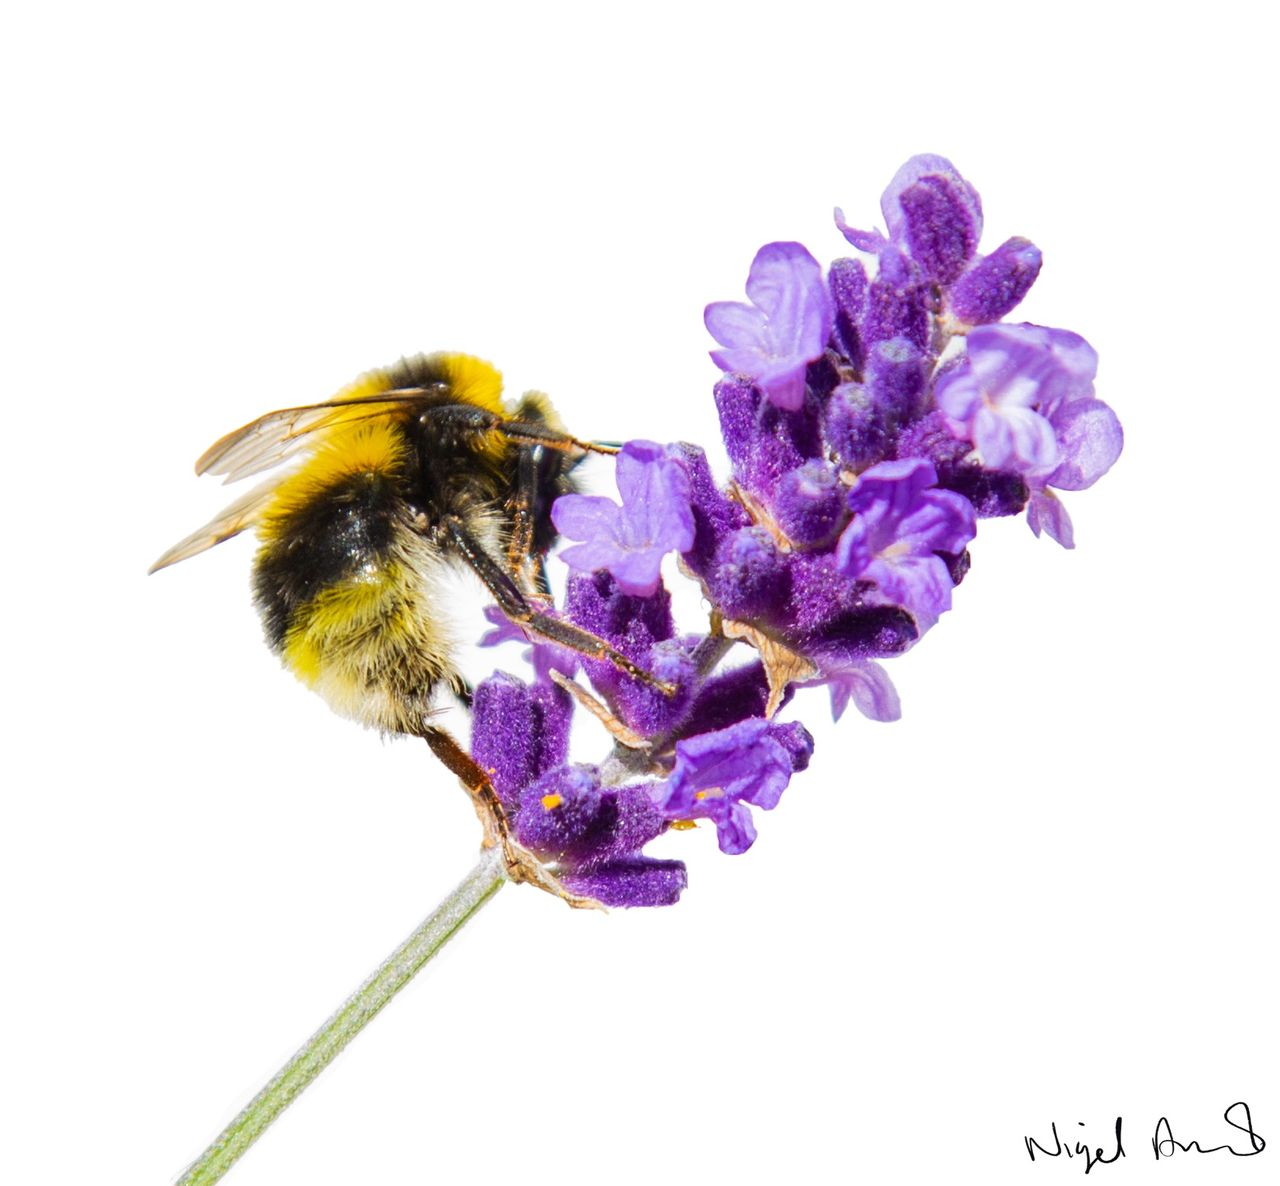 flower, flowering plant, fragility, petal, vulnerability, plant, beauty in nature, animal themes, bee, invertebrate, animal, purple, animals in the wild, close-up, insect, animal wildlife, flower head, studio shot, one animal, freshness, pollination, no people, bumblebee, lavender